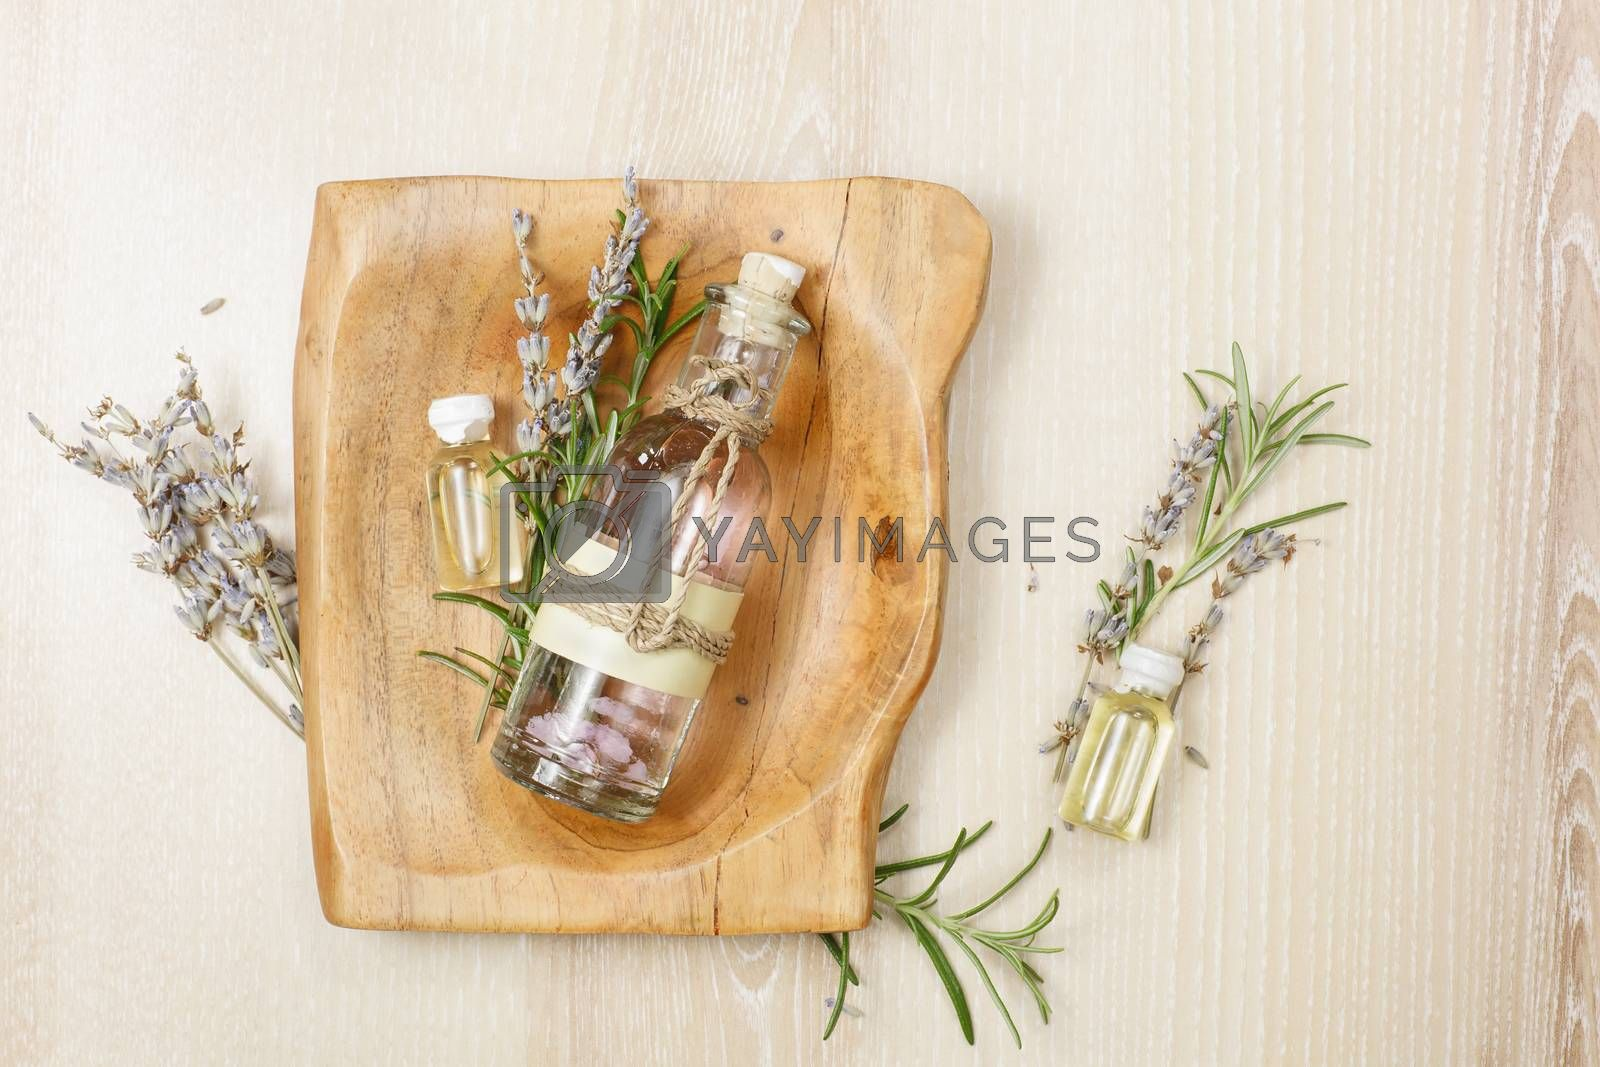 Rosemary and lavender essential oil by Slast20